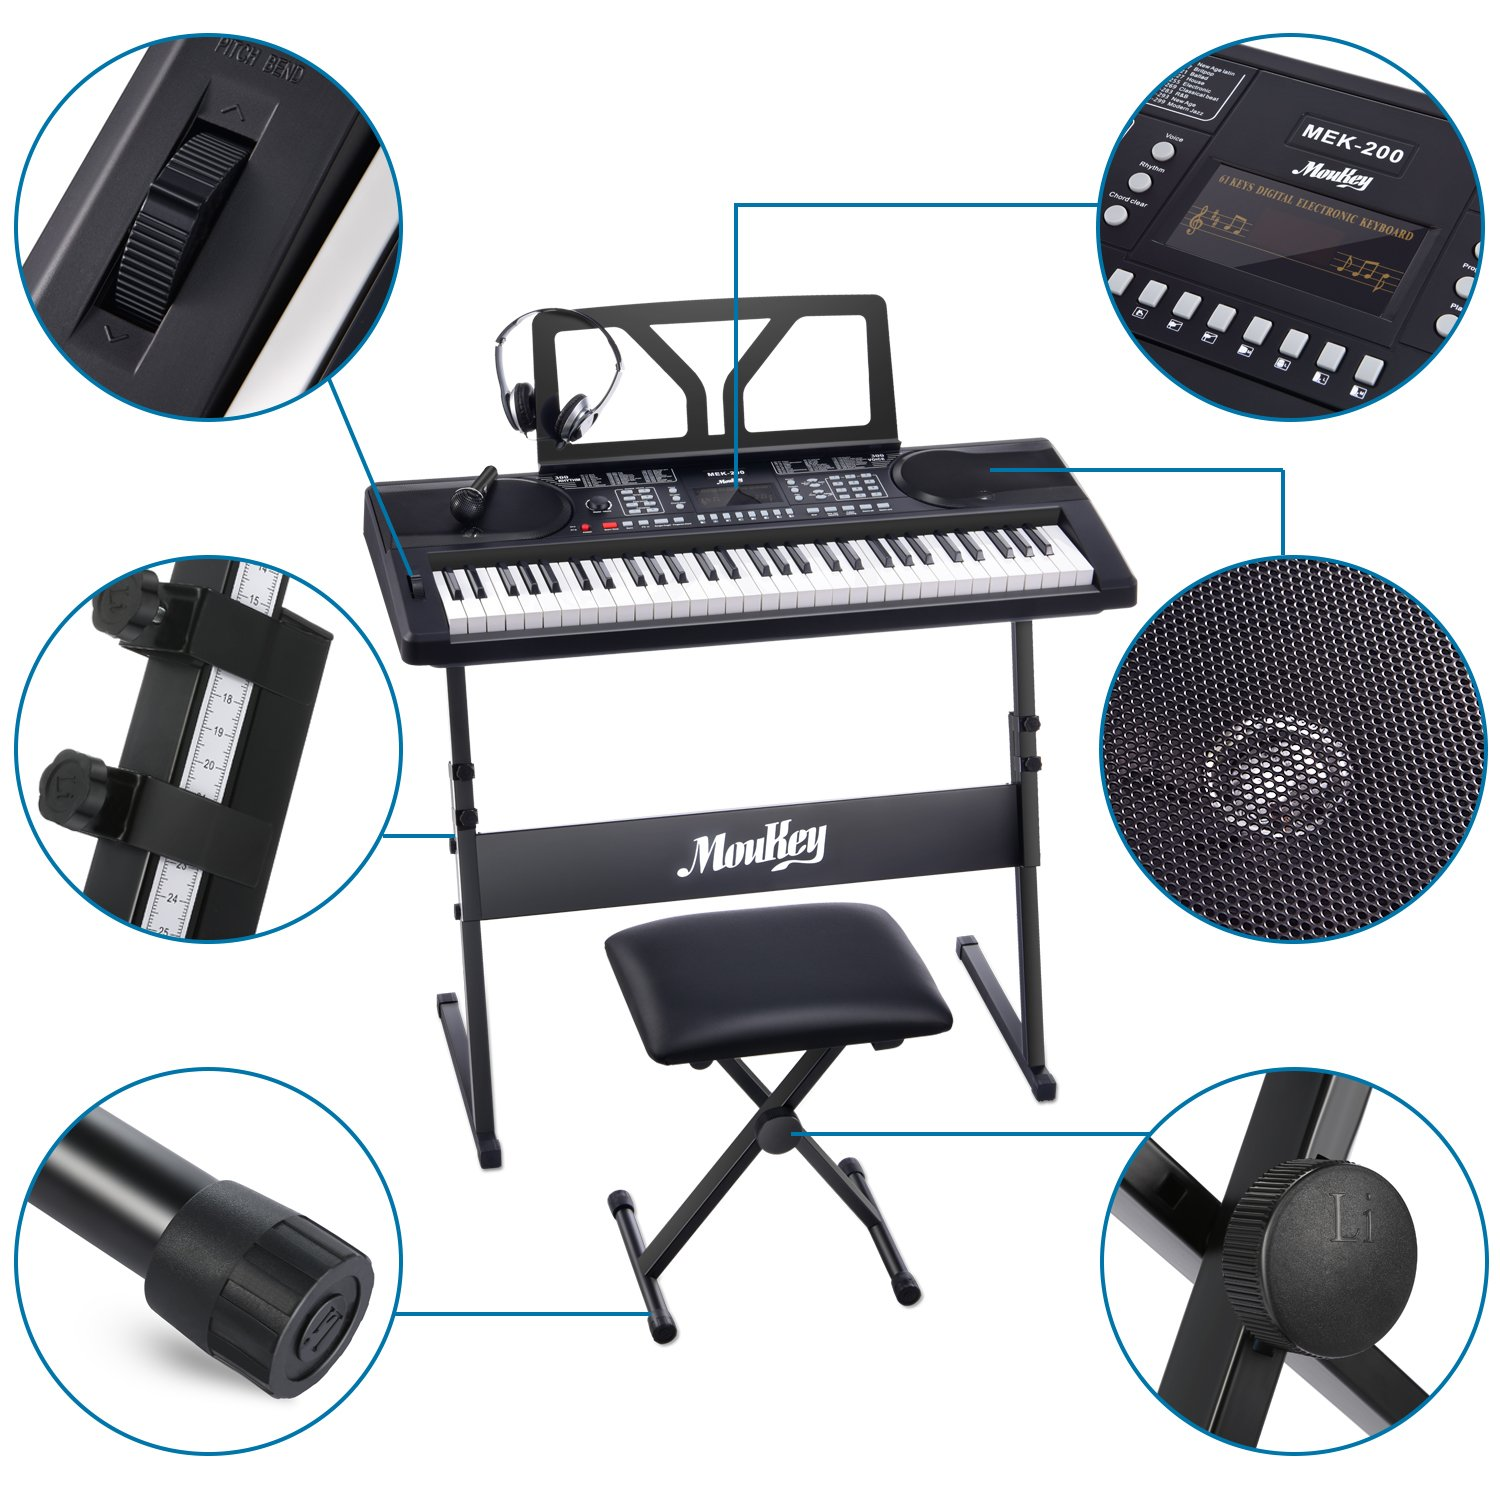 Moukey MEK-200 Electric Keyboard Portable Piano Keyboard Music Kit with Stand, Bench, Headphone, Microphone & Sticker, 61 Key Keyboard, Black by Moukey (Image #8)